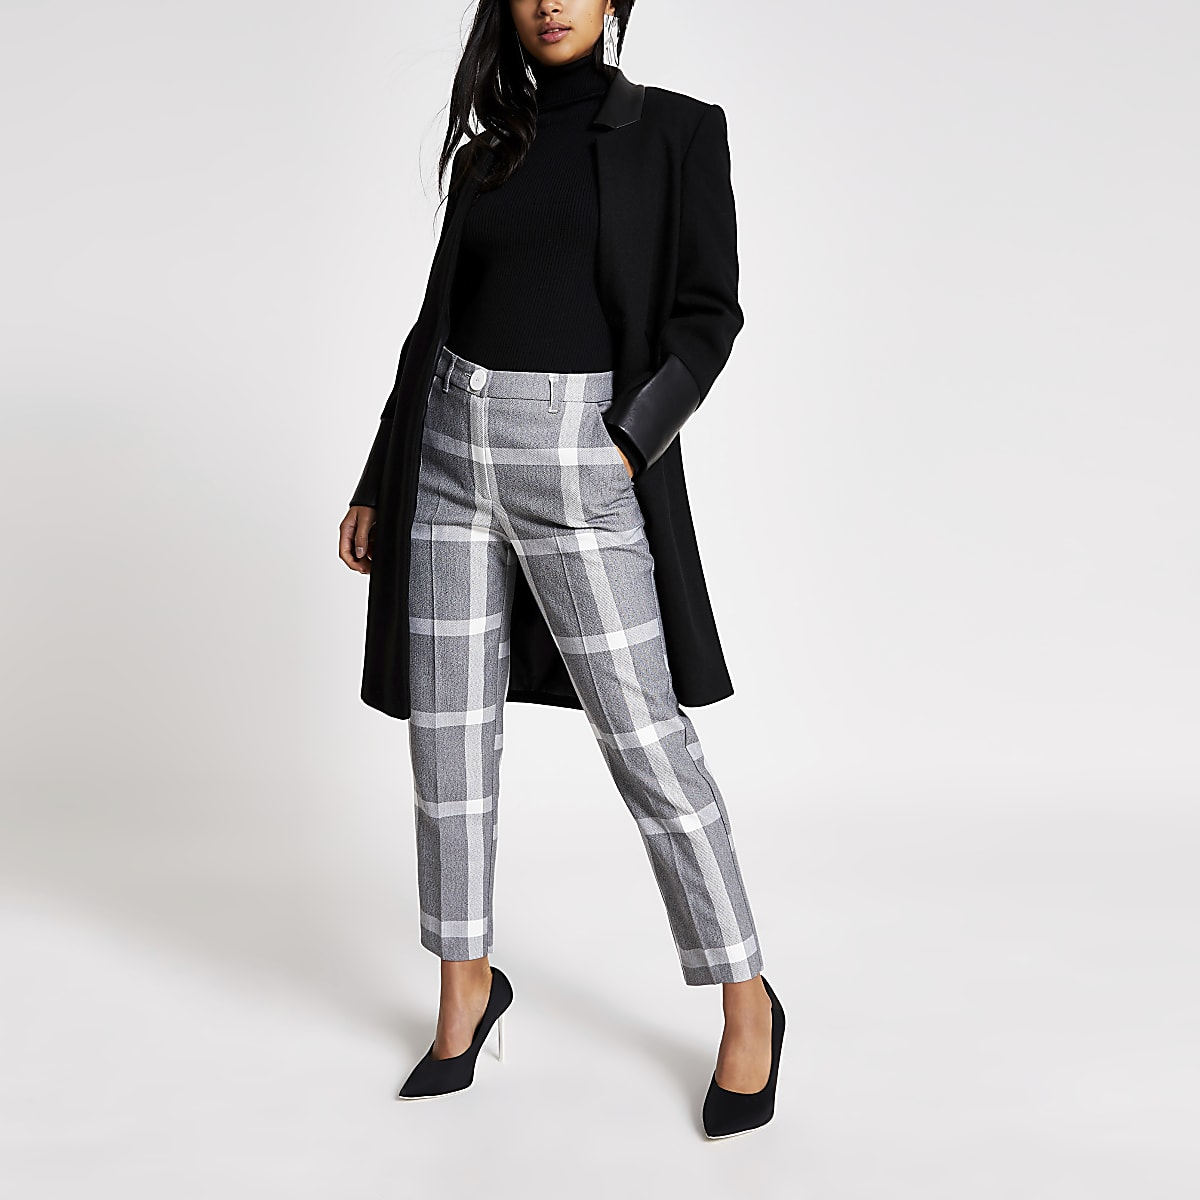 Petite grey check cigarette trousers